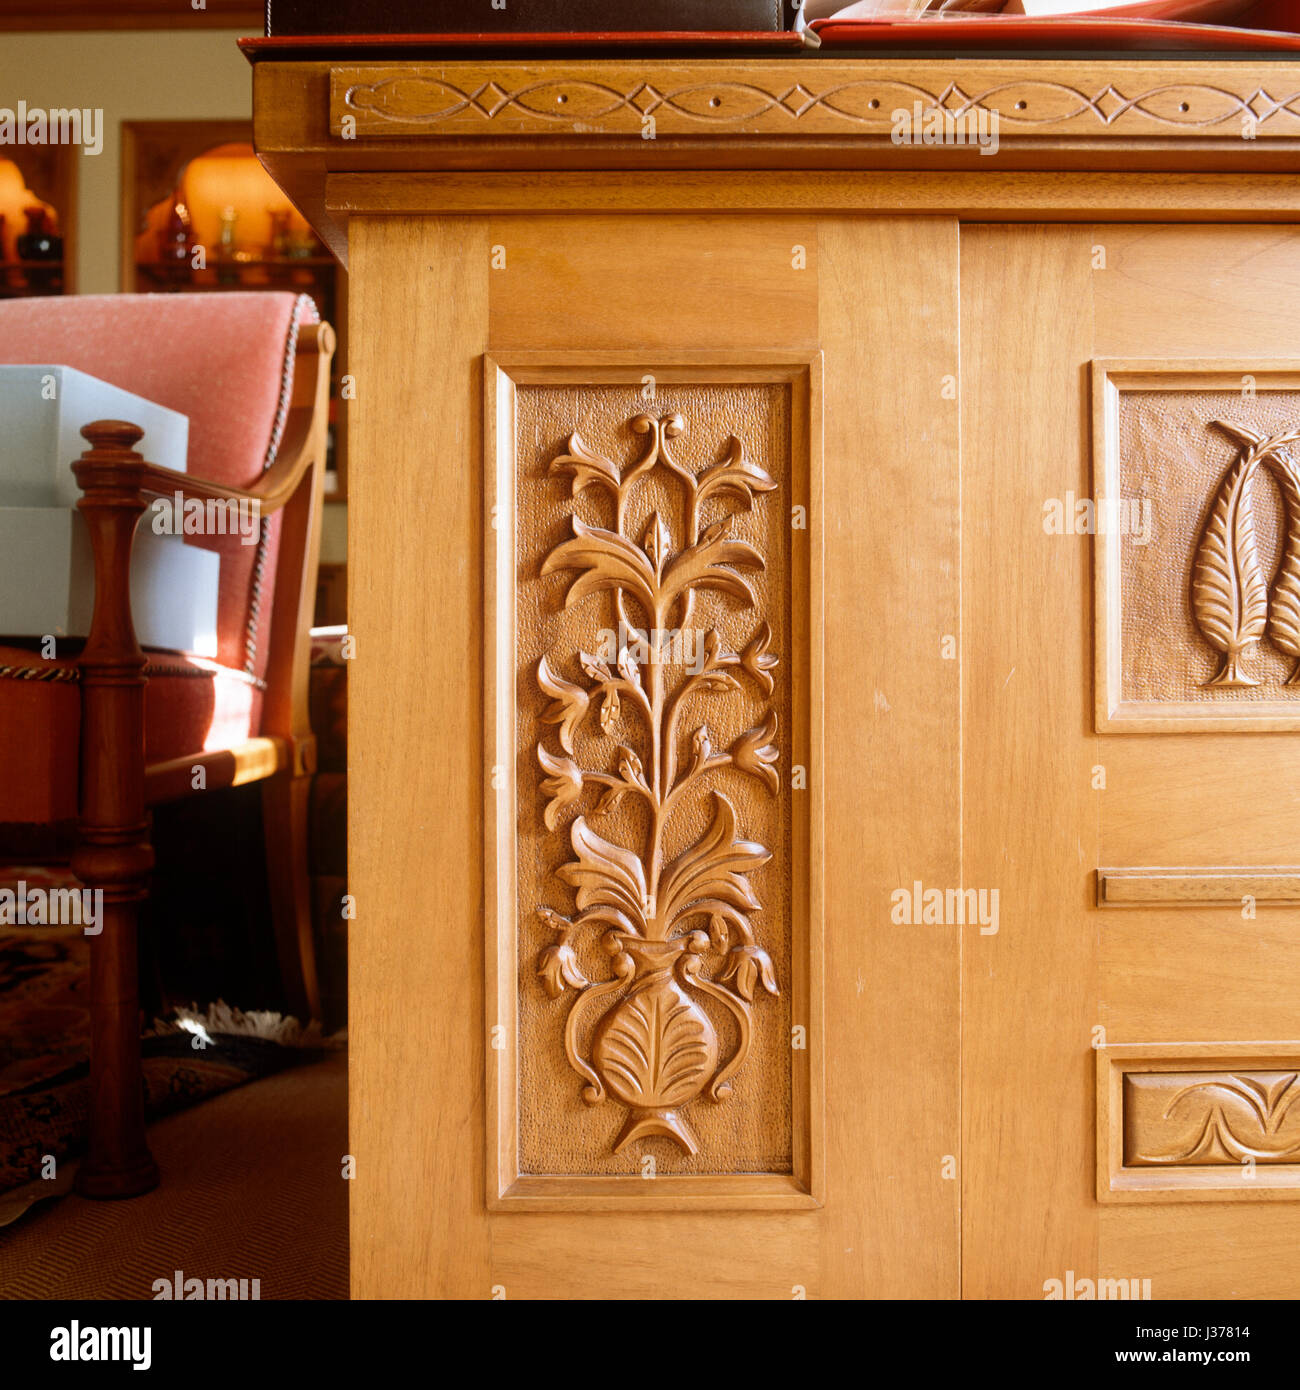 The Front Of Carved Wooden Desk.   Stock Image